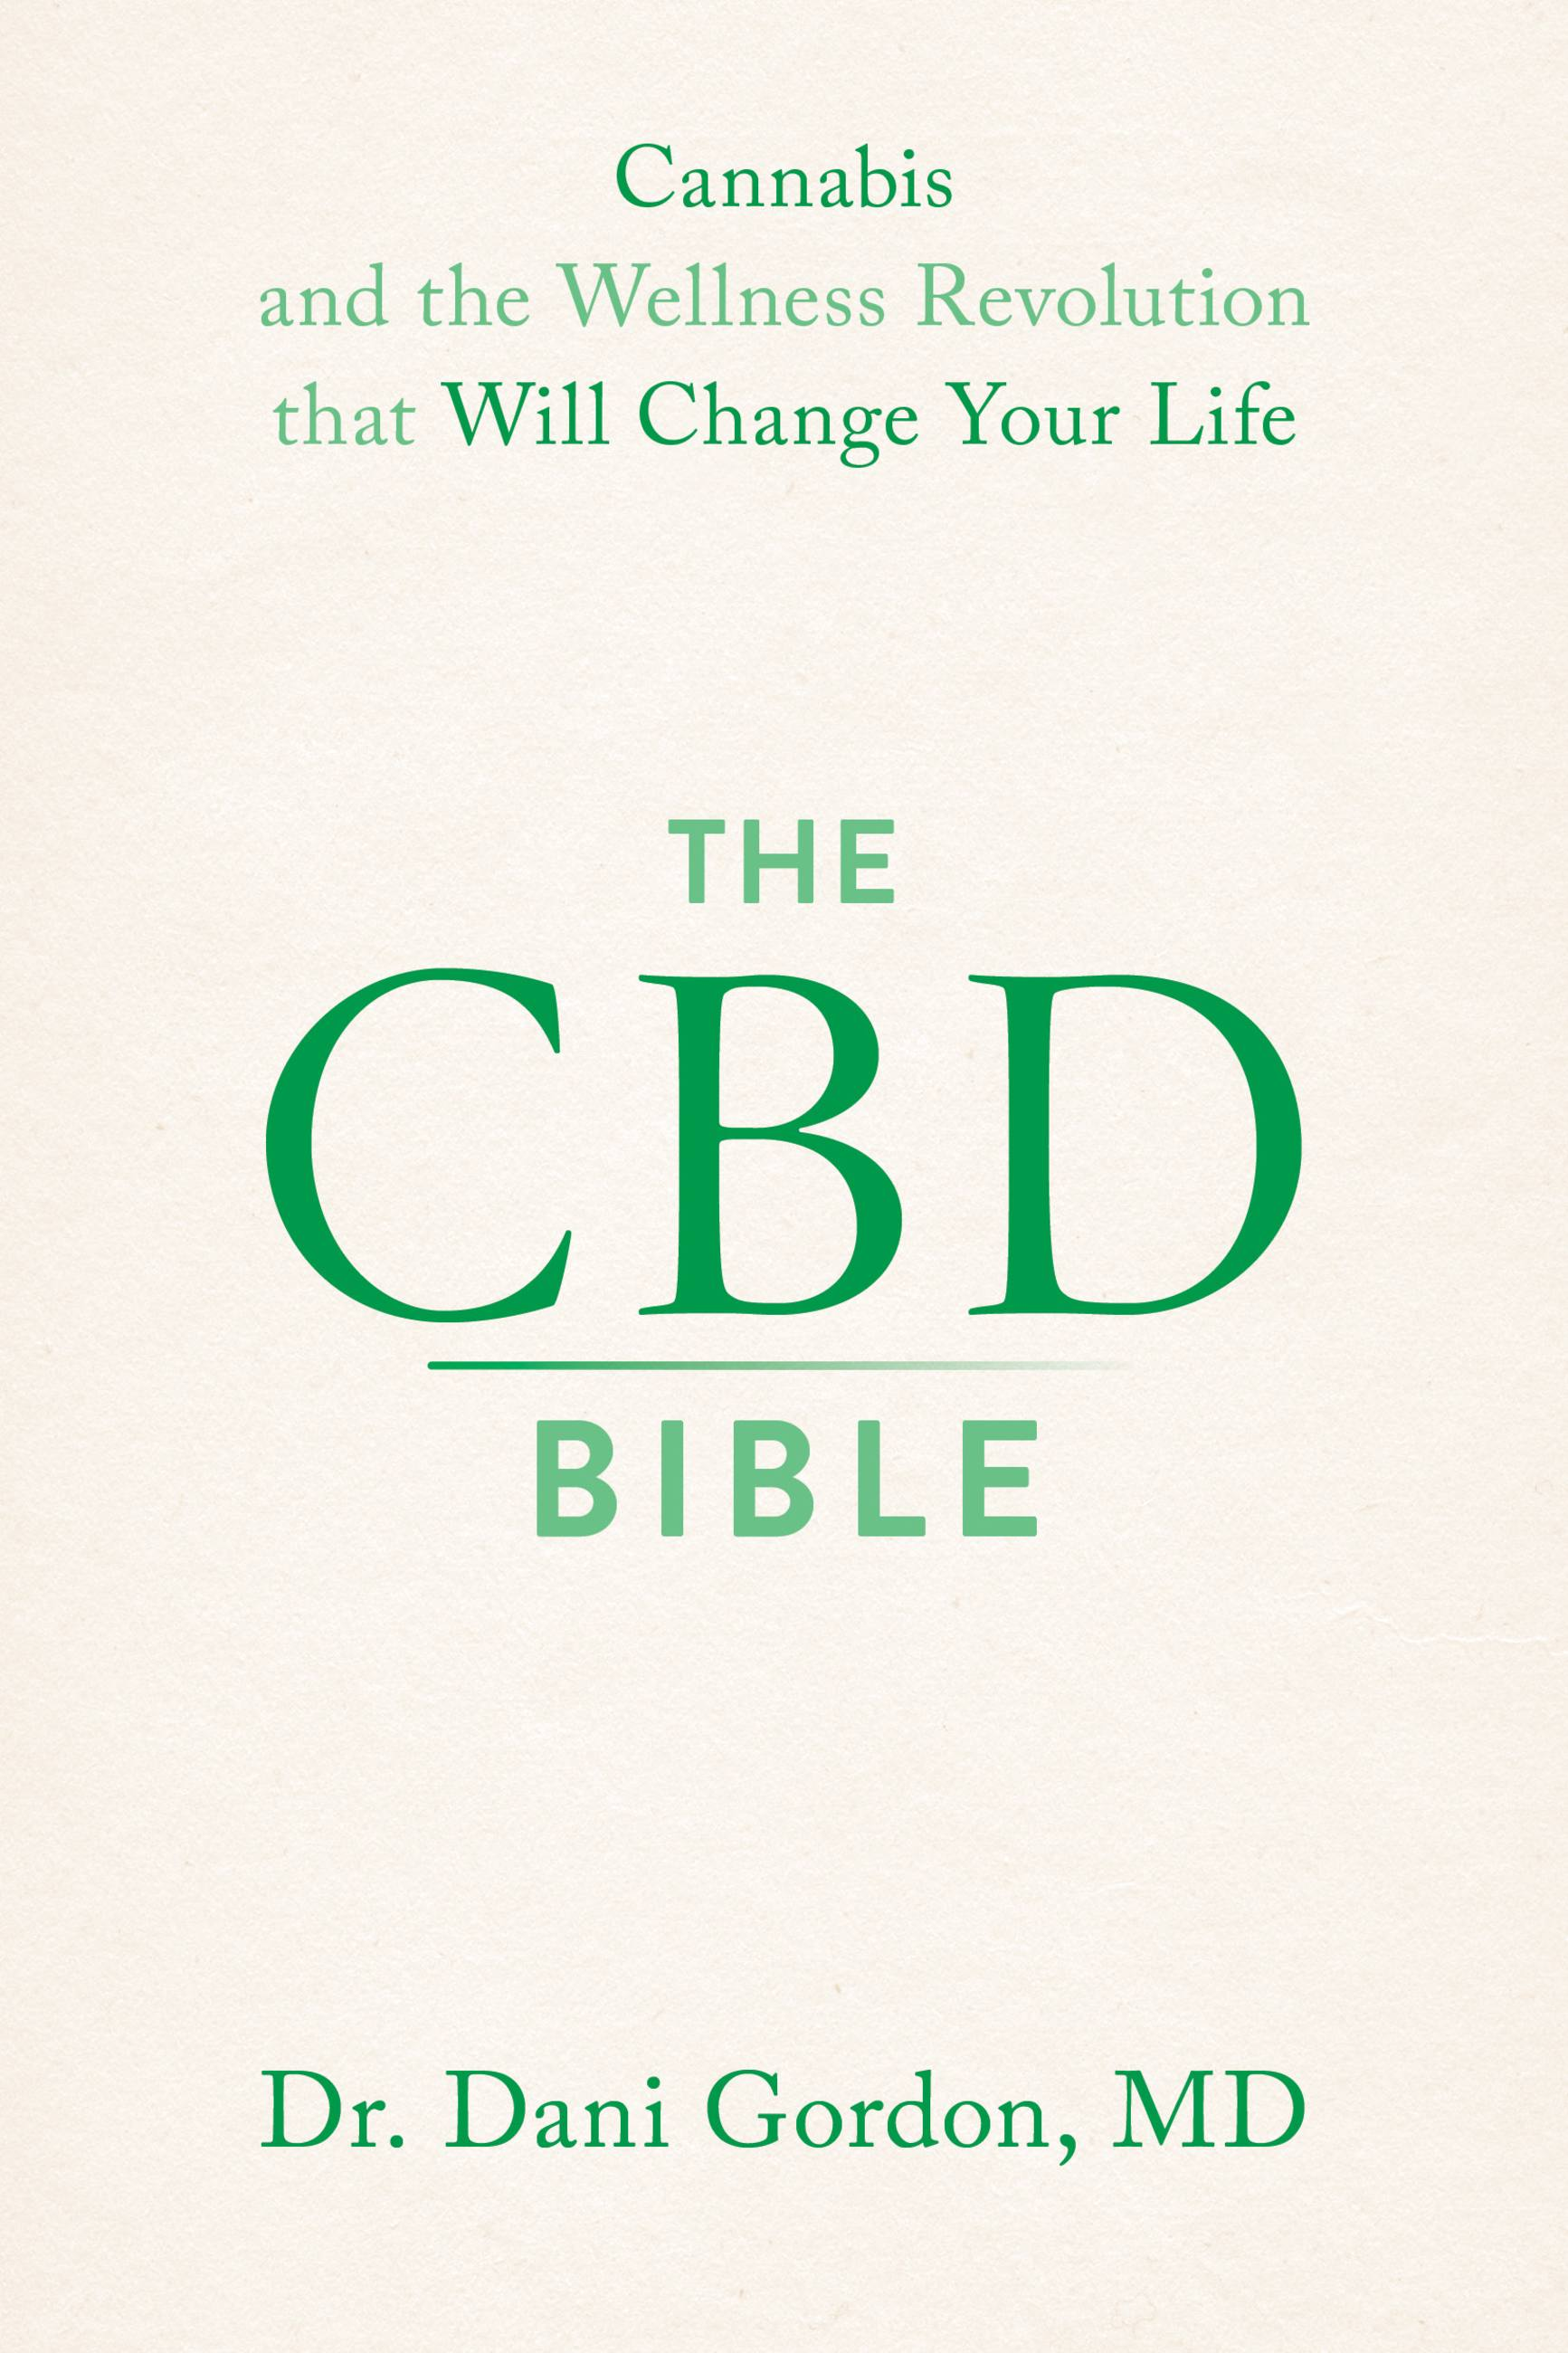 The CBD Bible Cannabis and the Wellness Revolution that Will Change Your Life